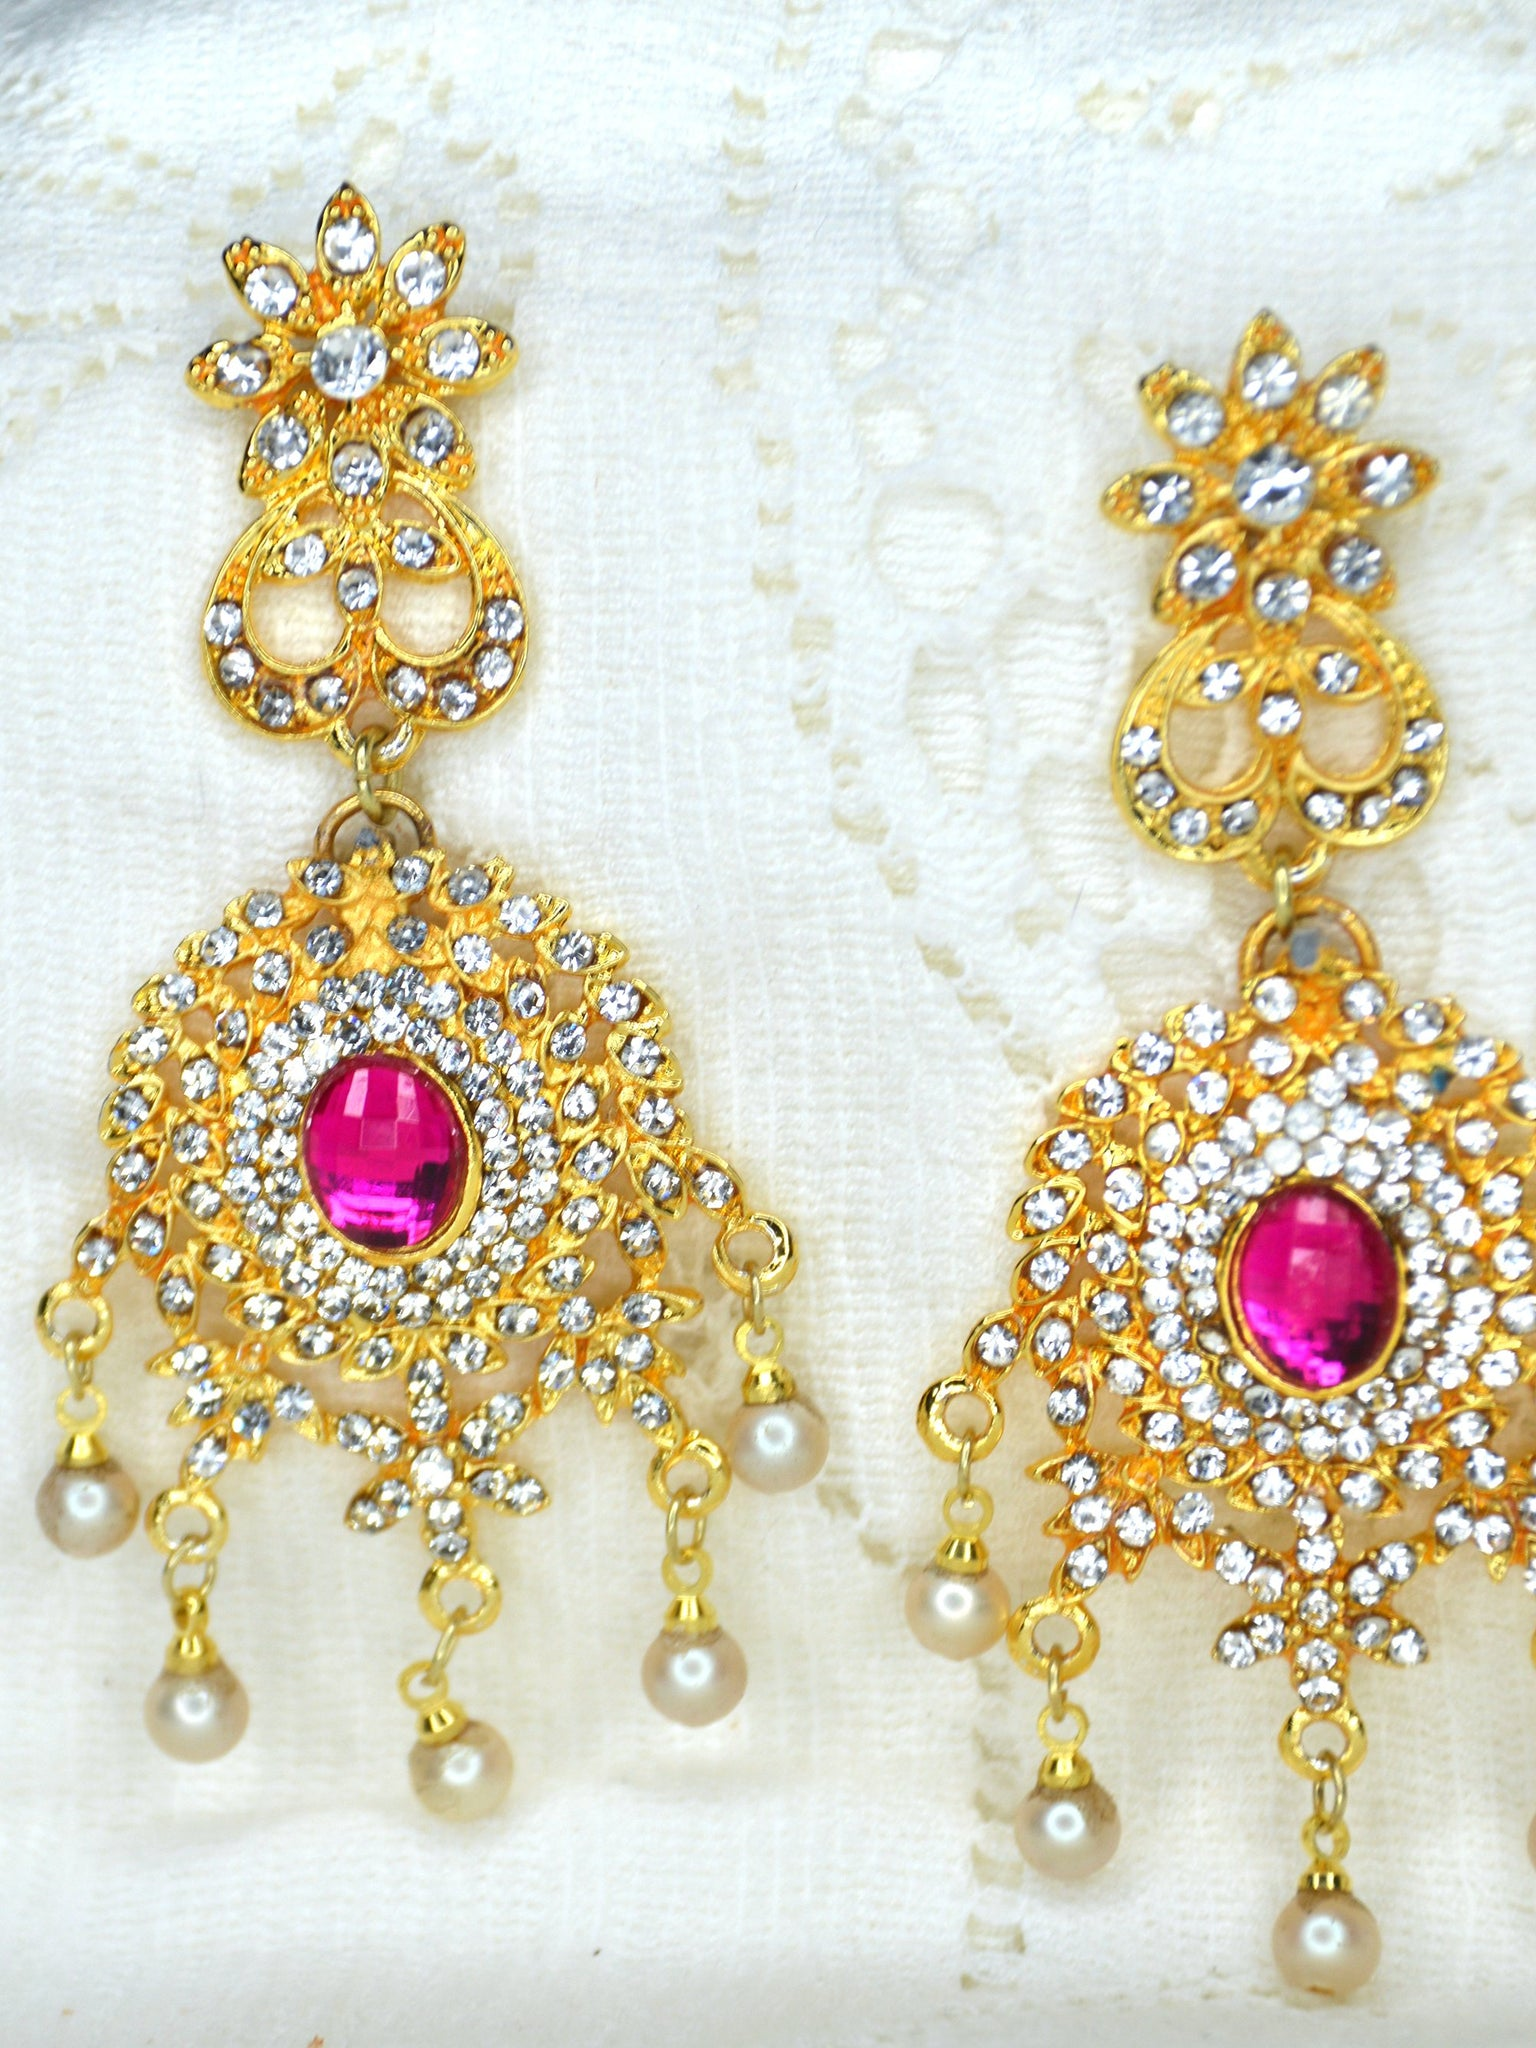 pink and gold wedding earrings statement earrings bridal jewelry